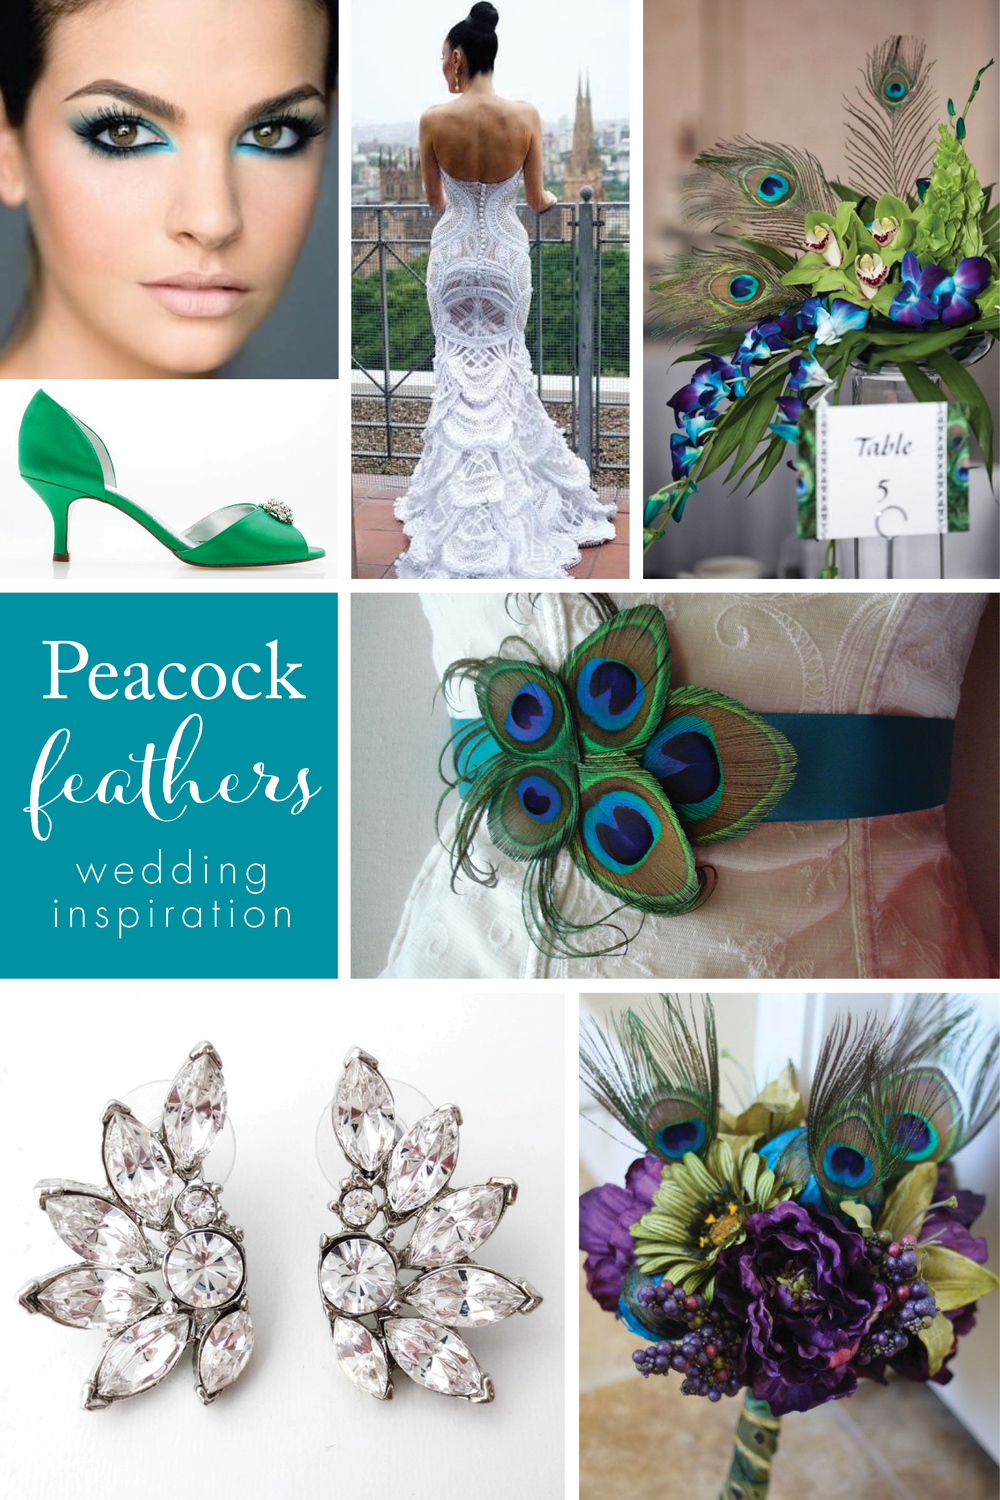 Peacock feathers at wedding